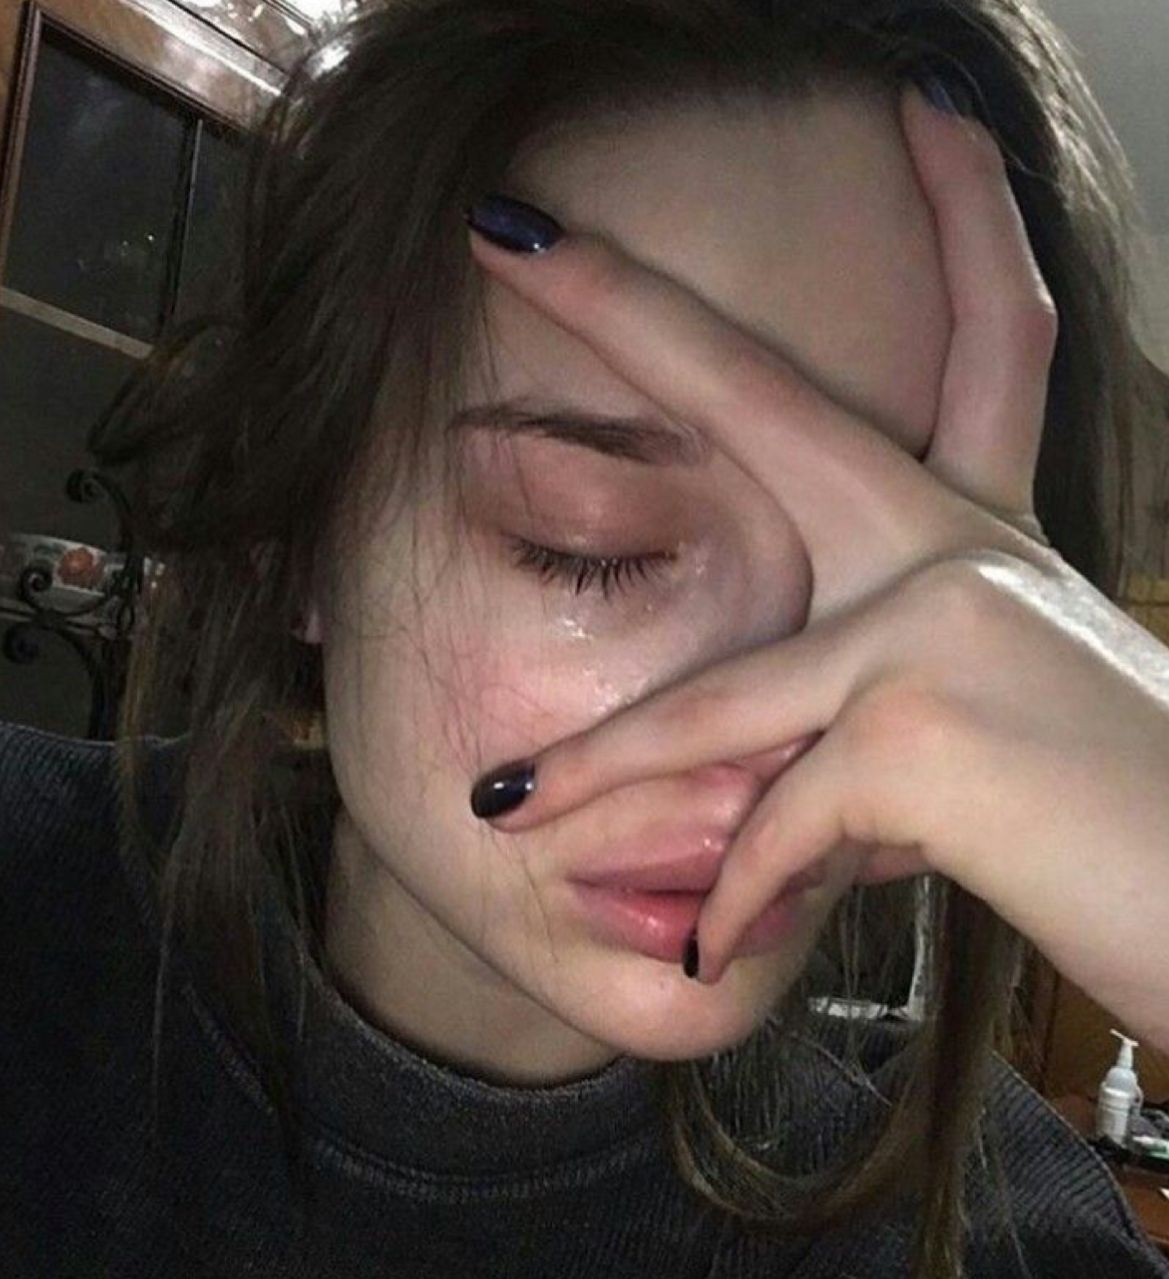 Sad Aesthetic Girl Crying